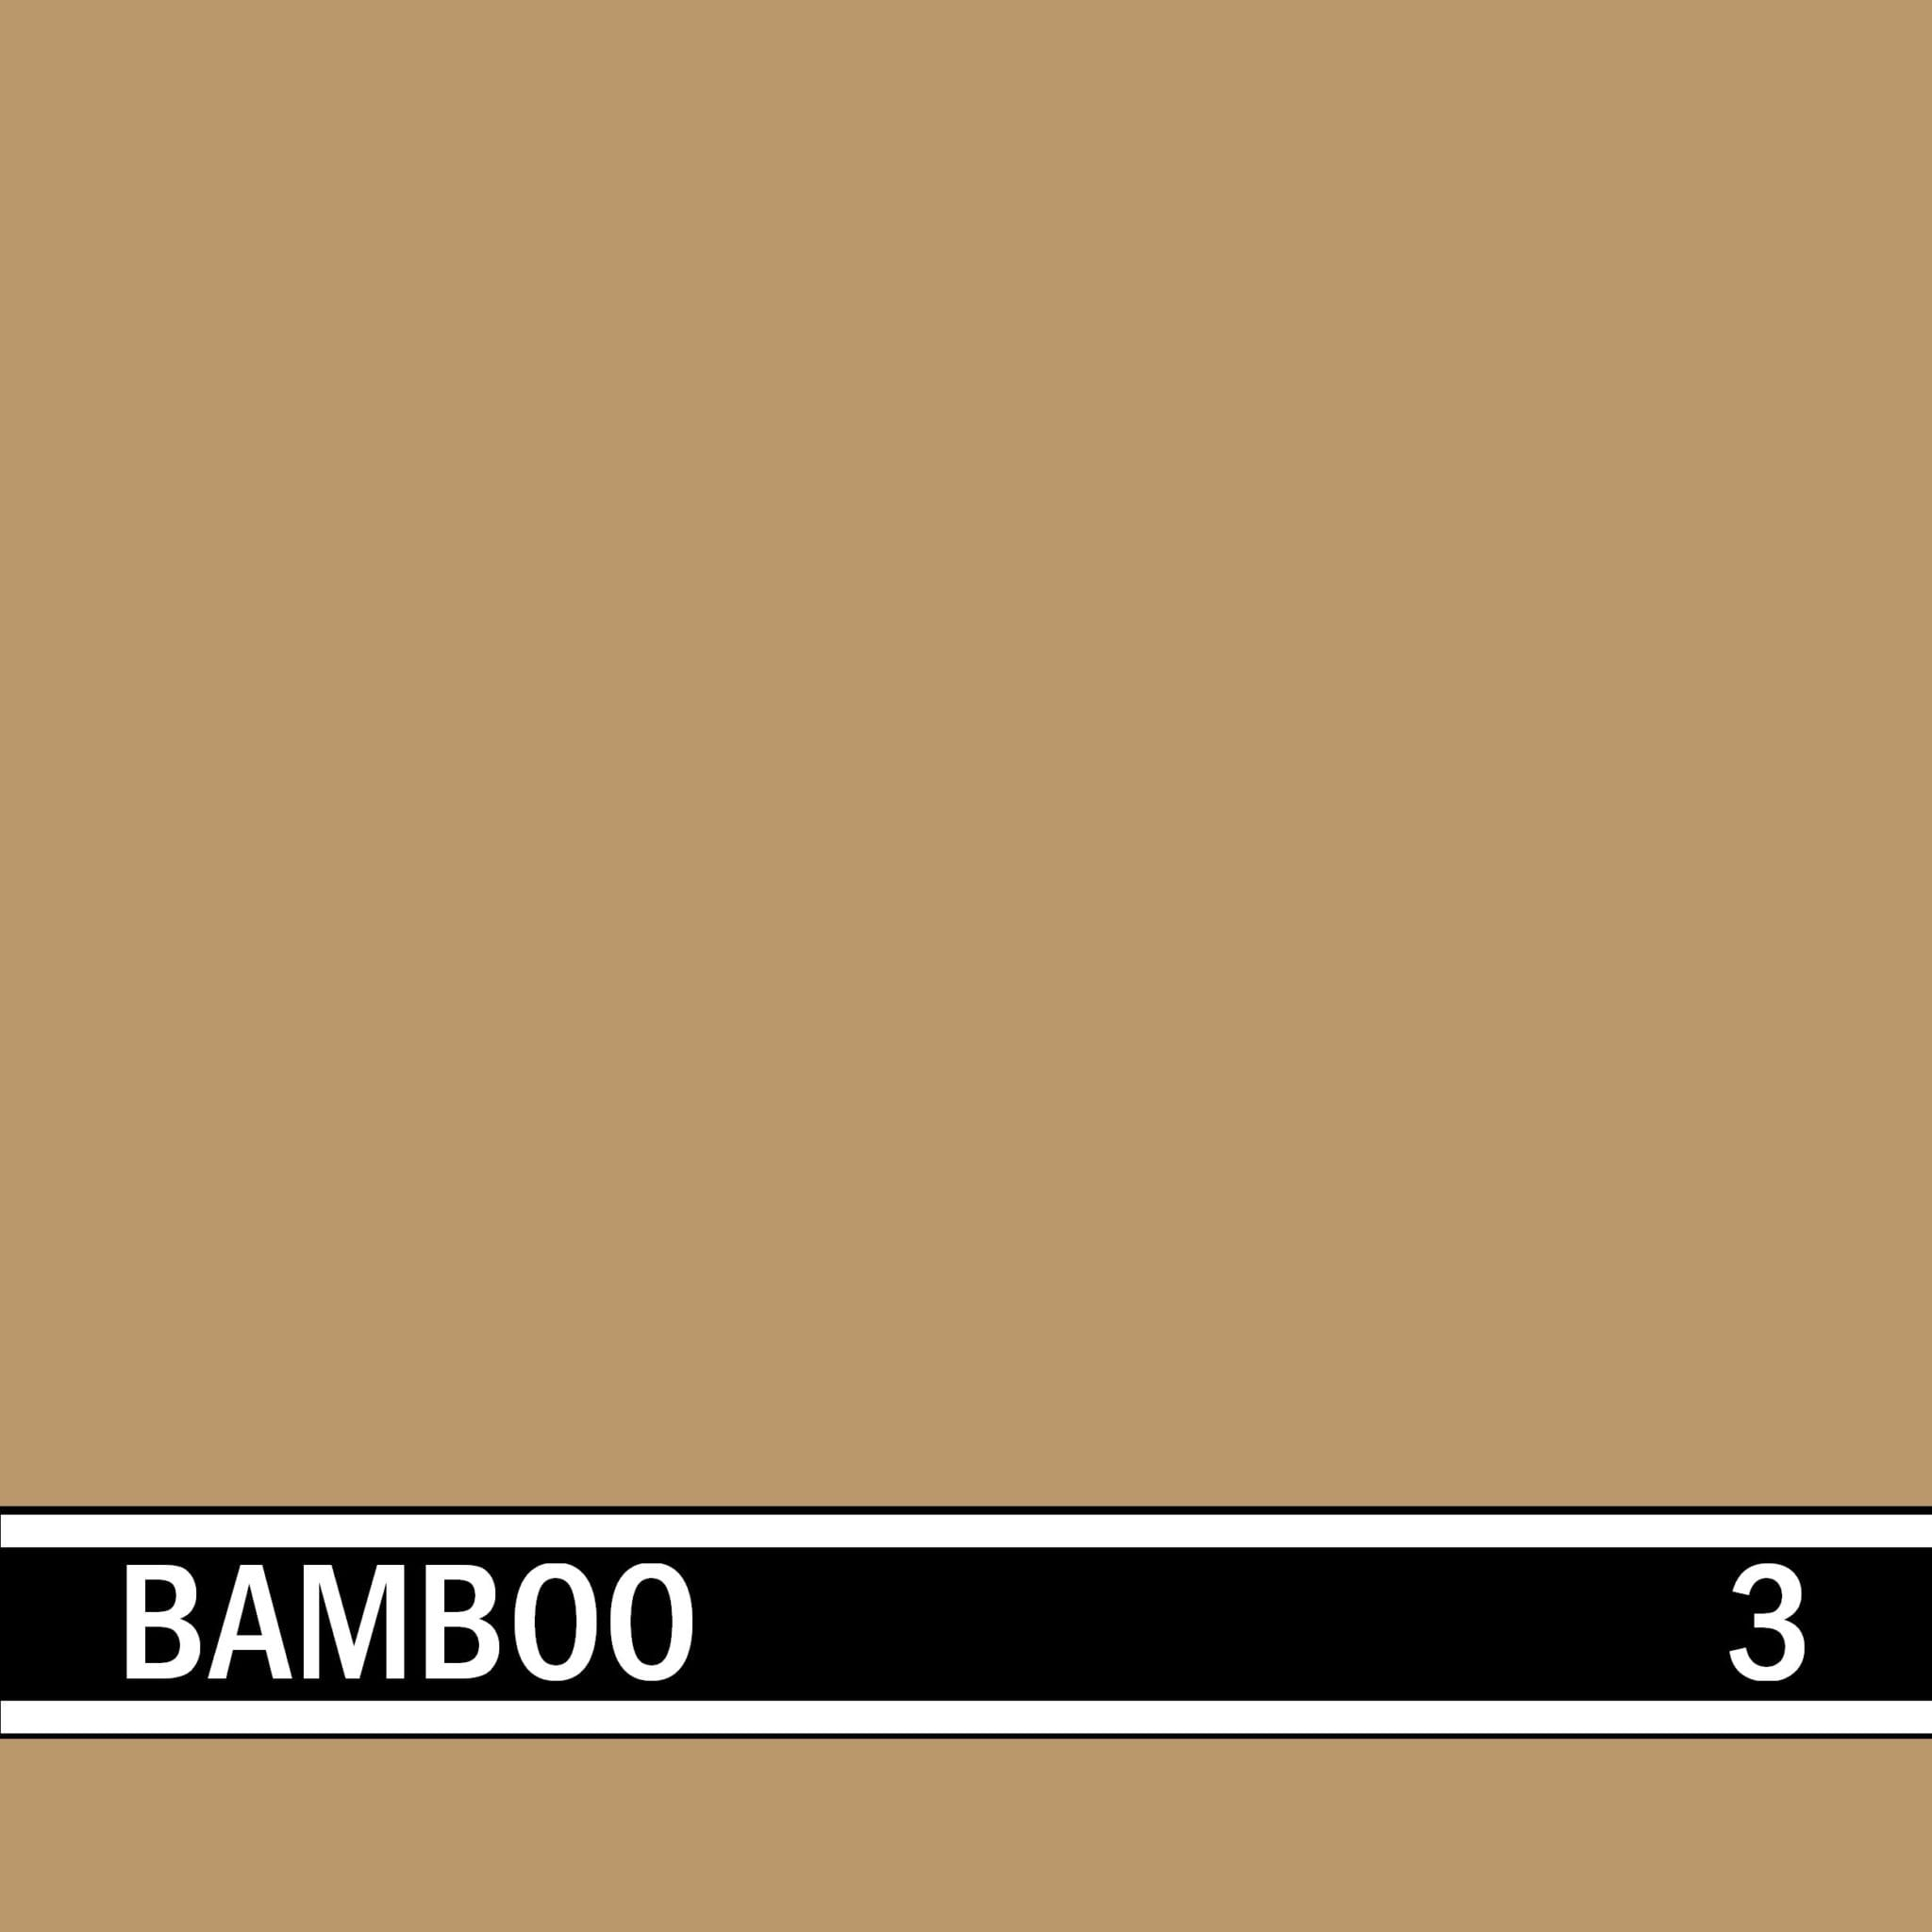 Bamboo integral concrete color for stamped concrete and decorative colored concrete